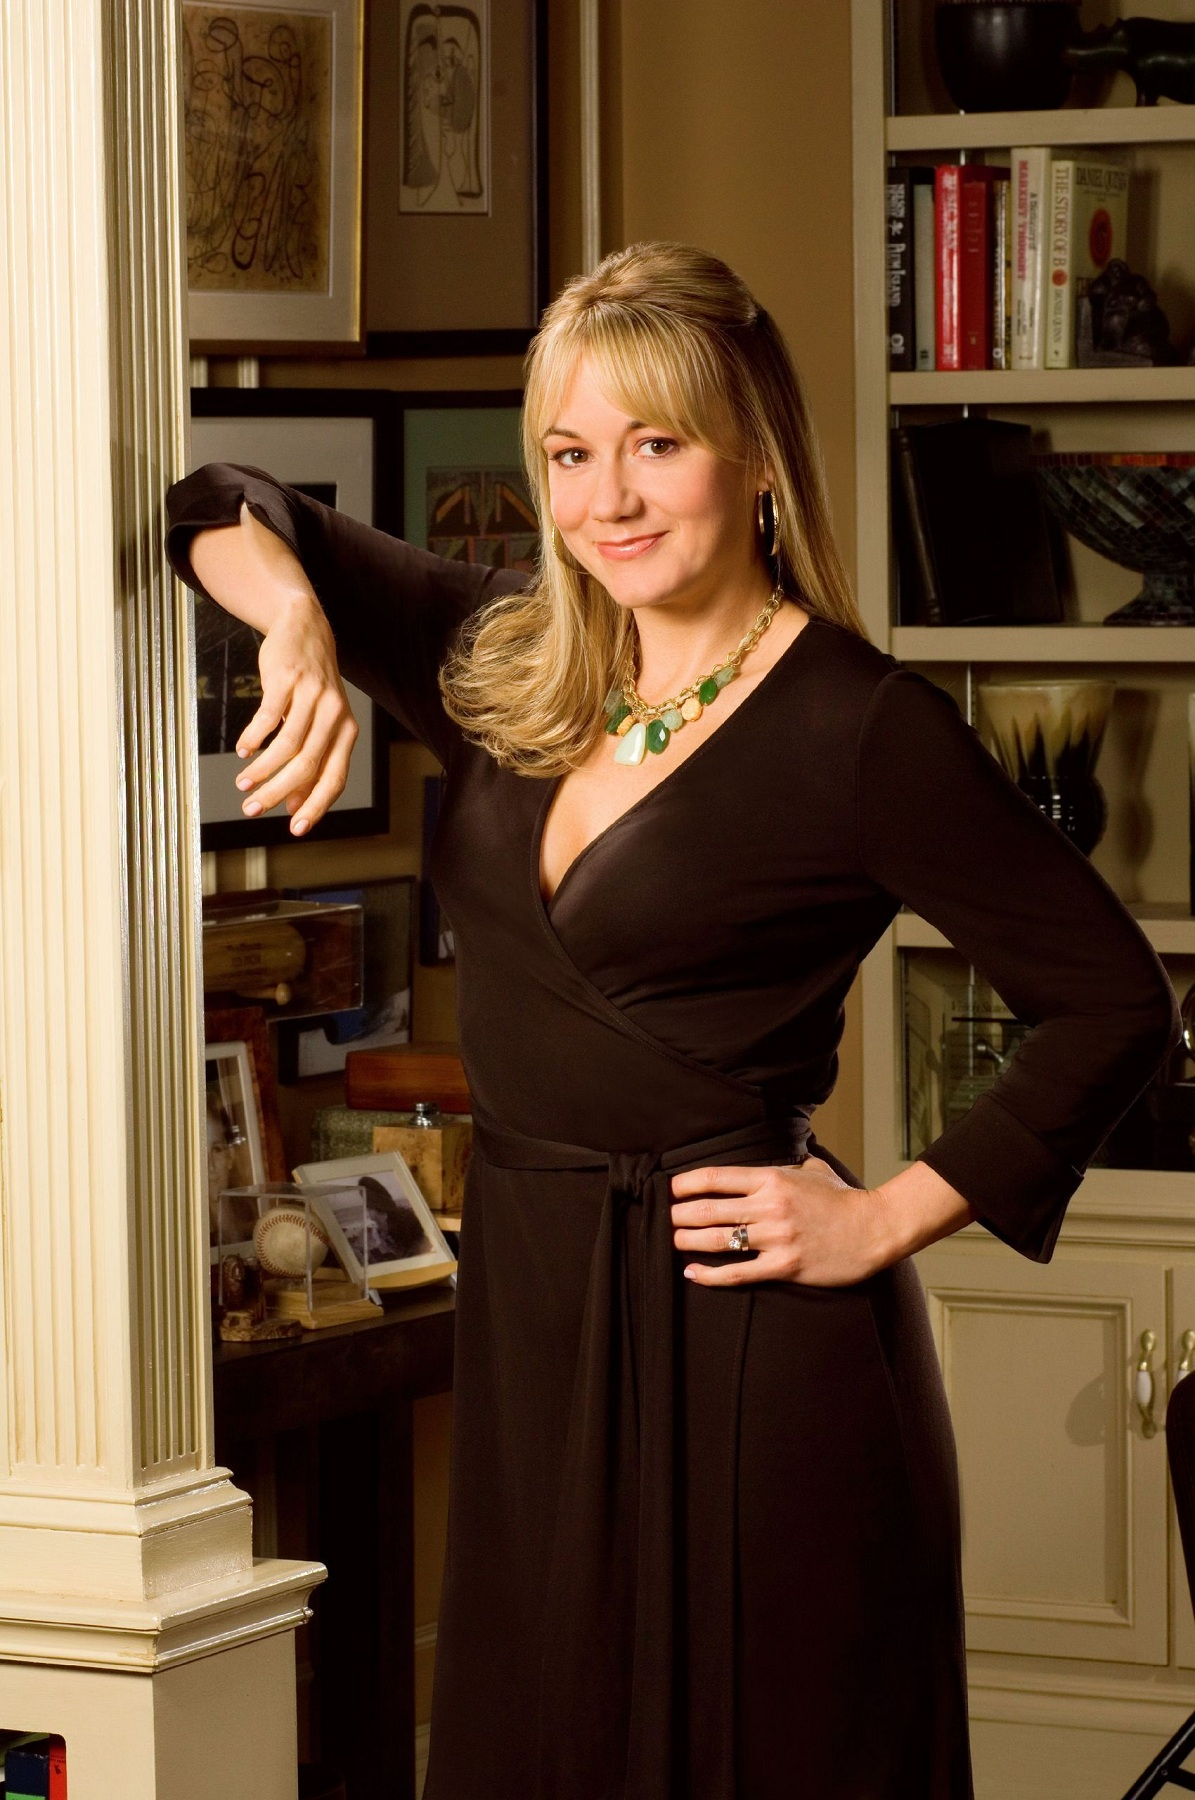 Megyn Price Hottest Bikini Pictures - Show Her Sexy Beauty